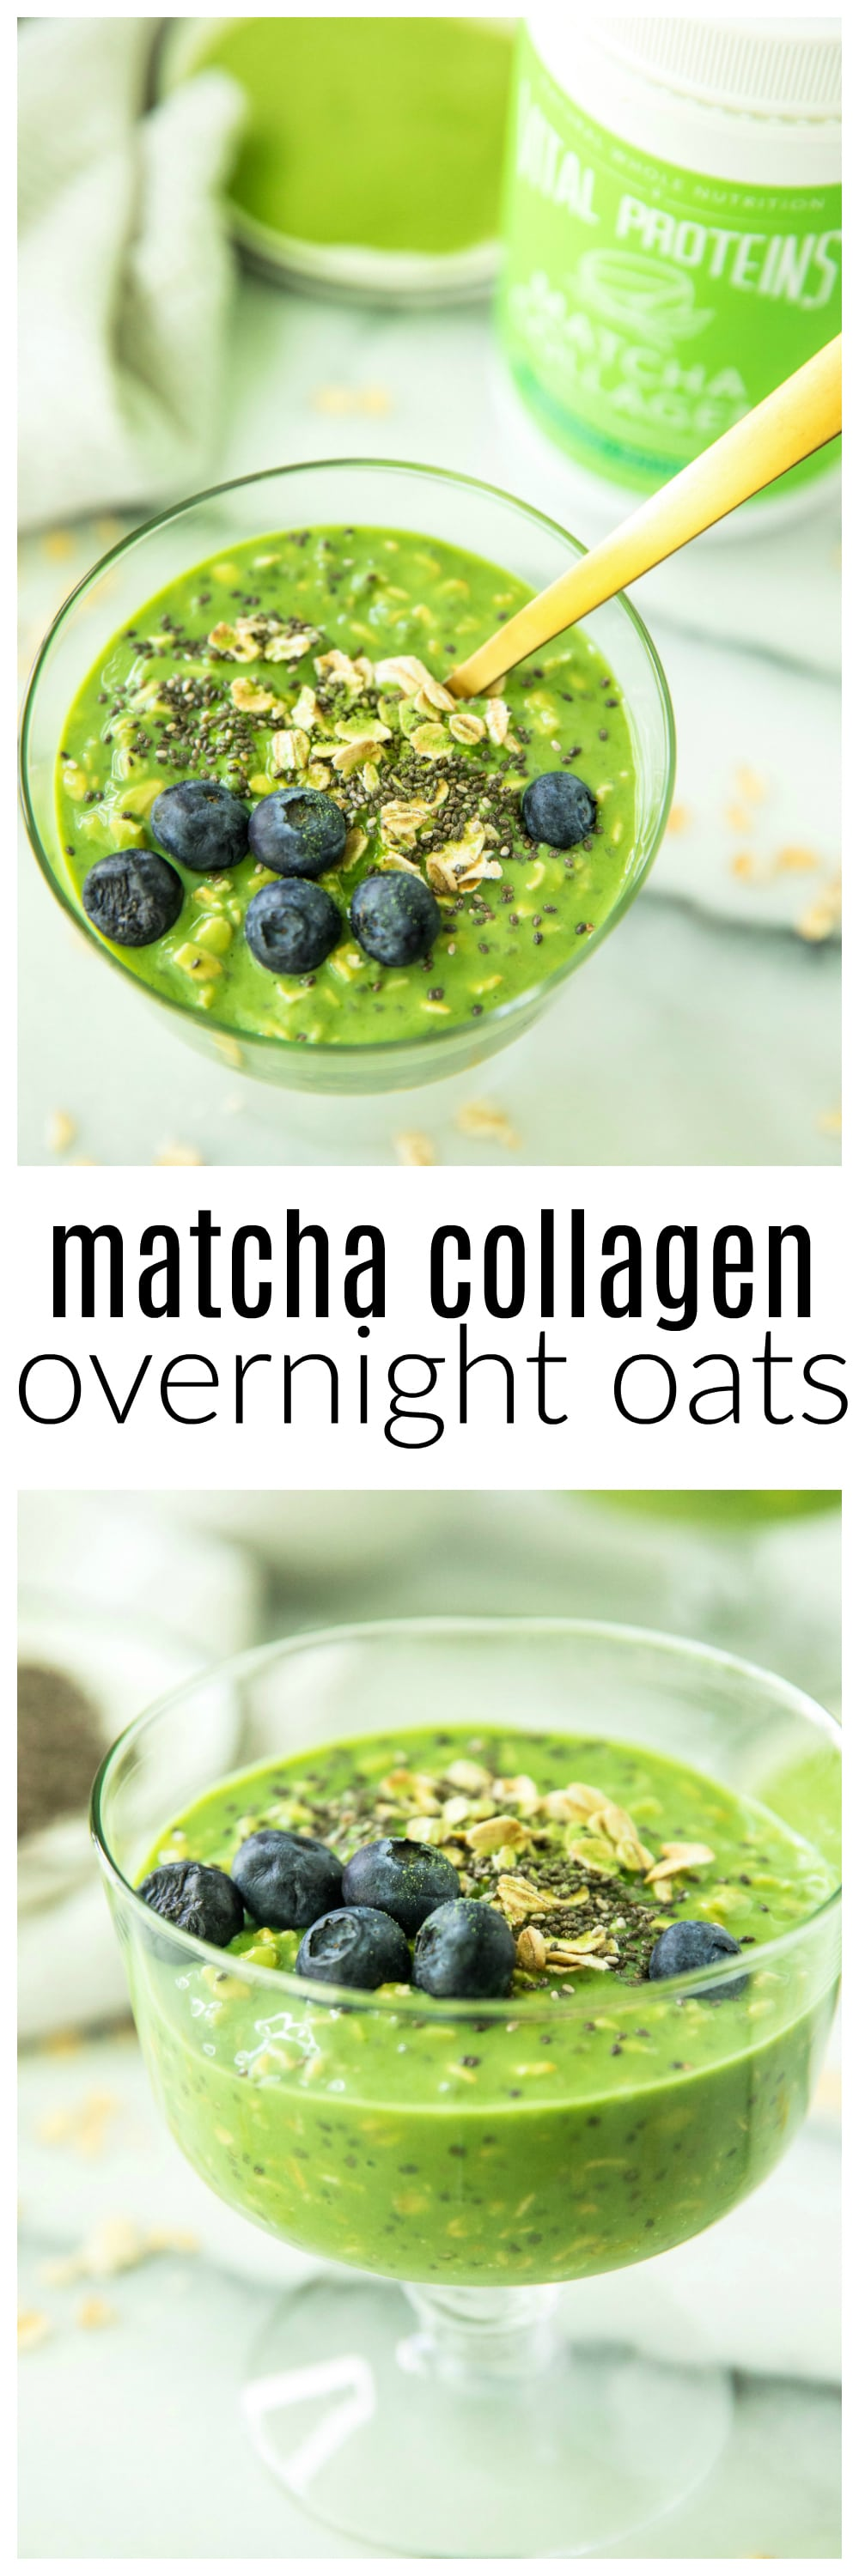 Got 5 minutes? Prep Matcha Collagen Overnight Oats before heading off to bed - the next morning enjoy a breakfast packed with fiber, antioxidants, and delicious flavor!